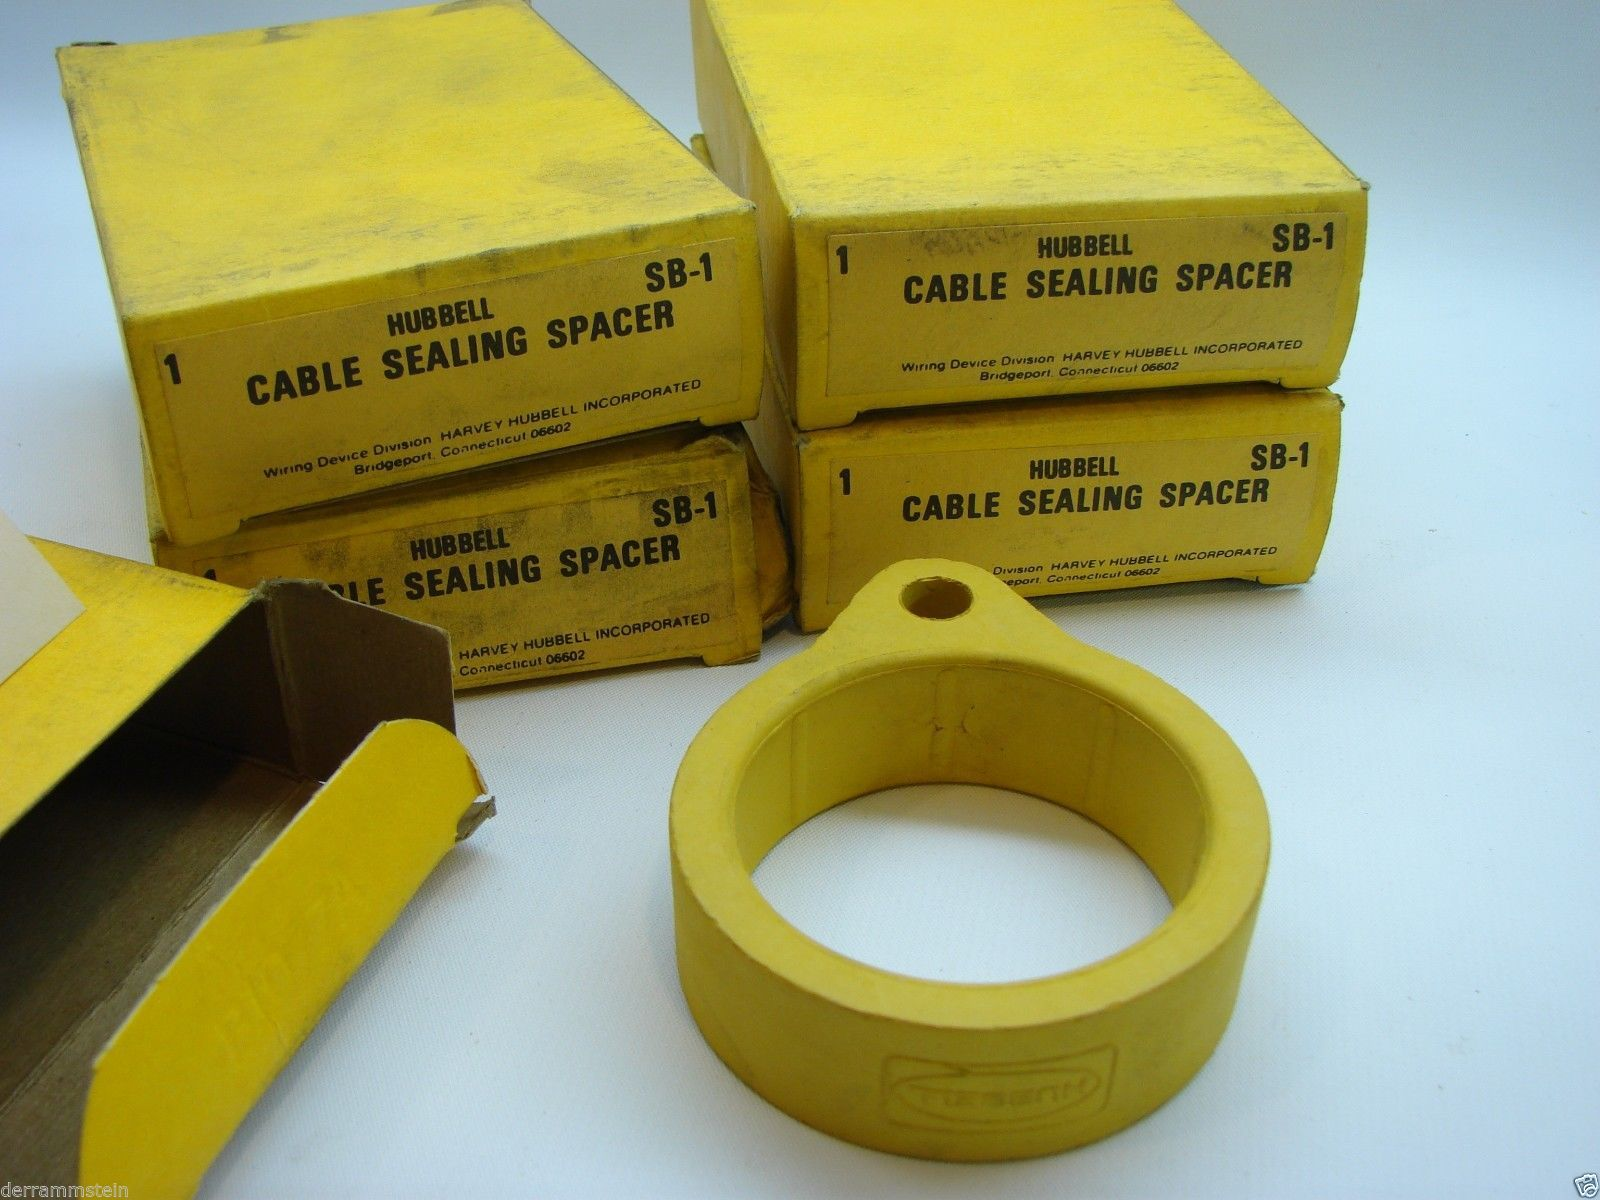 5 Hubbell SB-1 Cable Sealing Spacers Prevent Moisture Between Plug/Connector t2